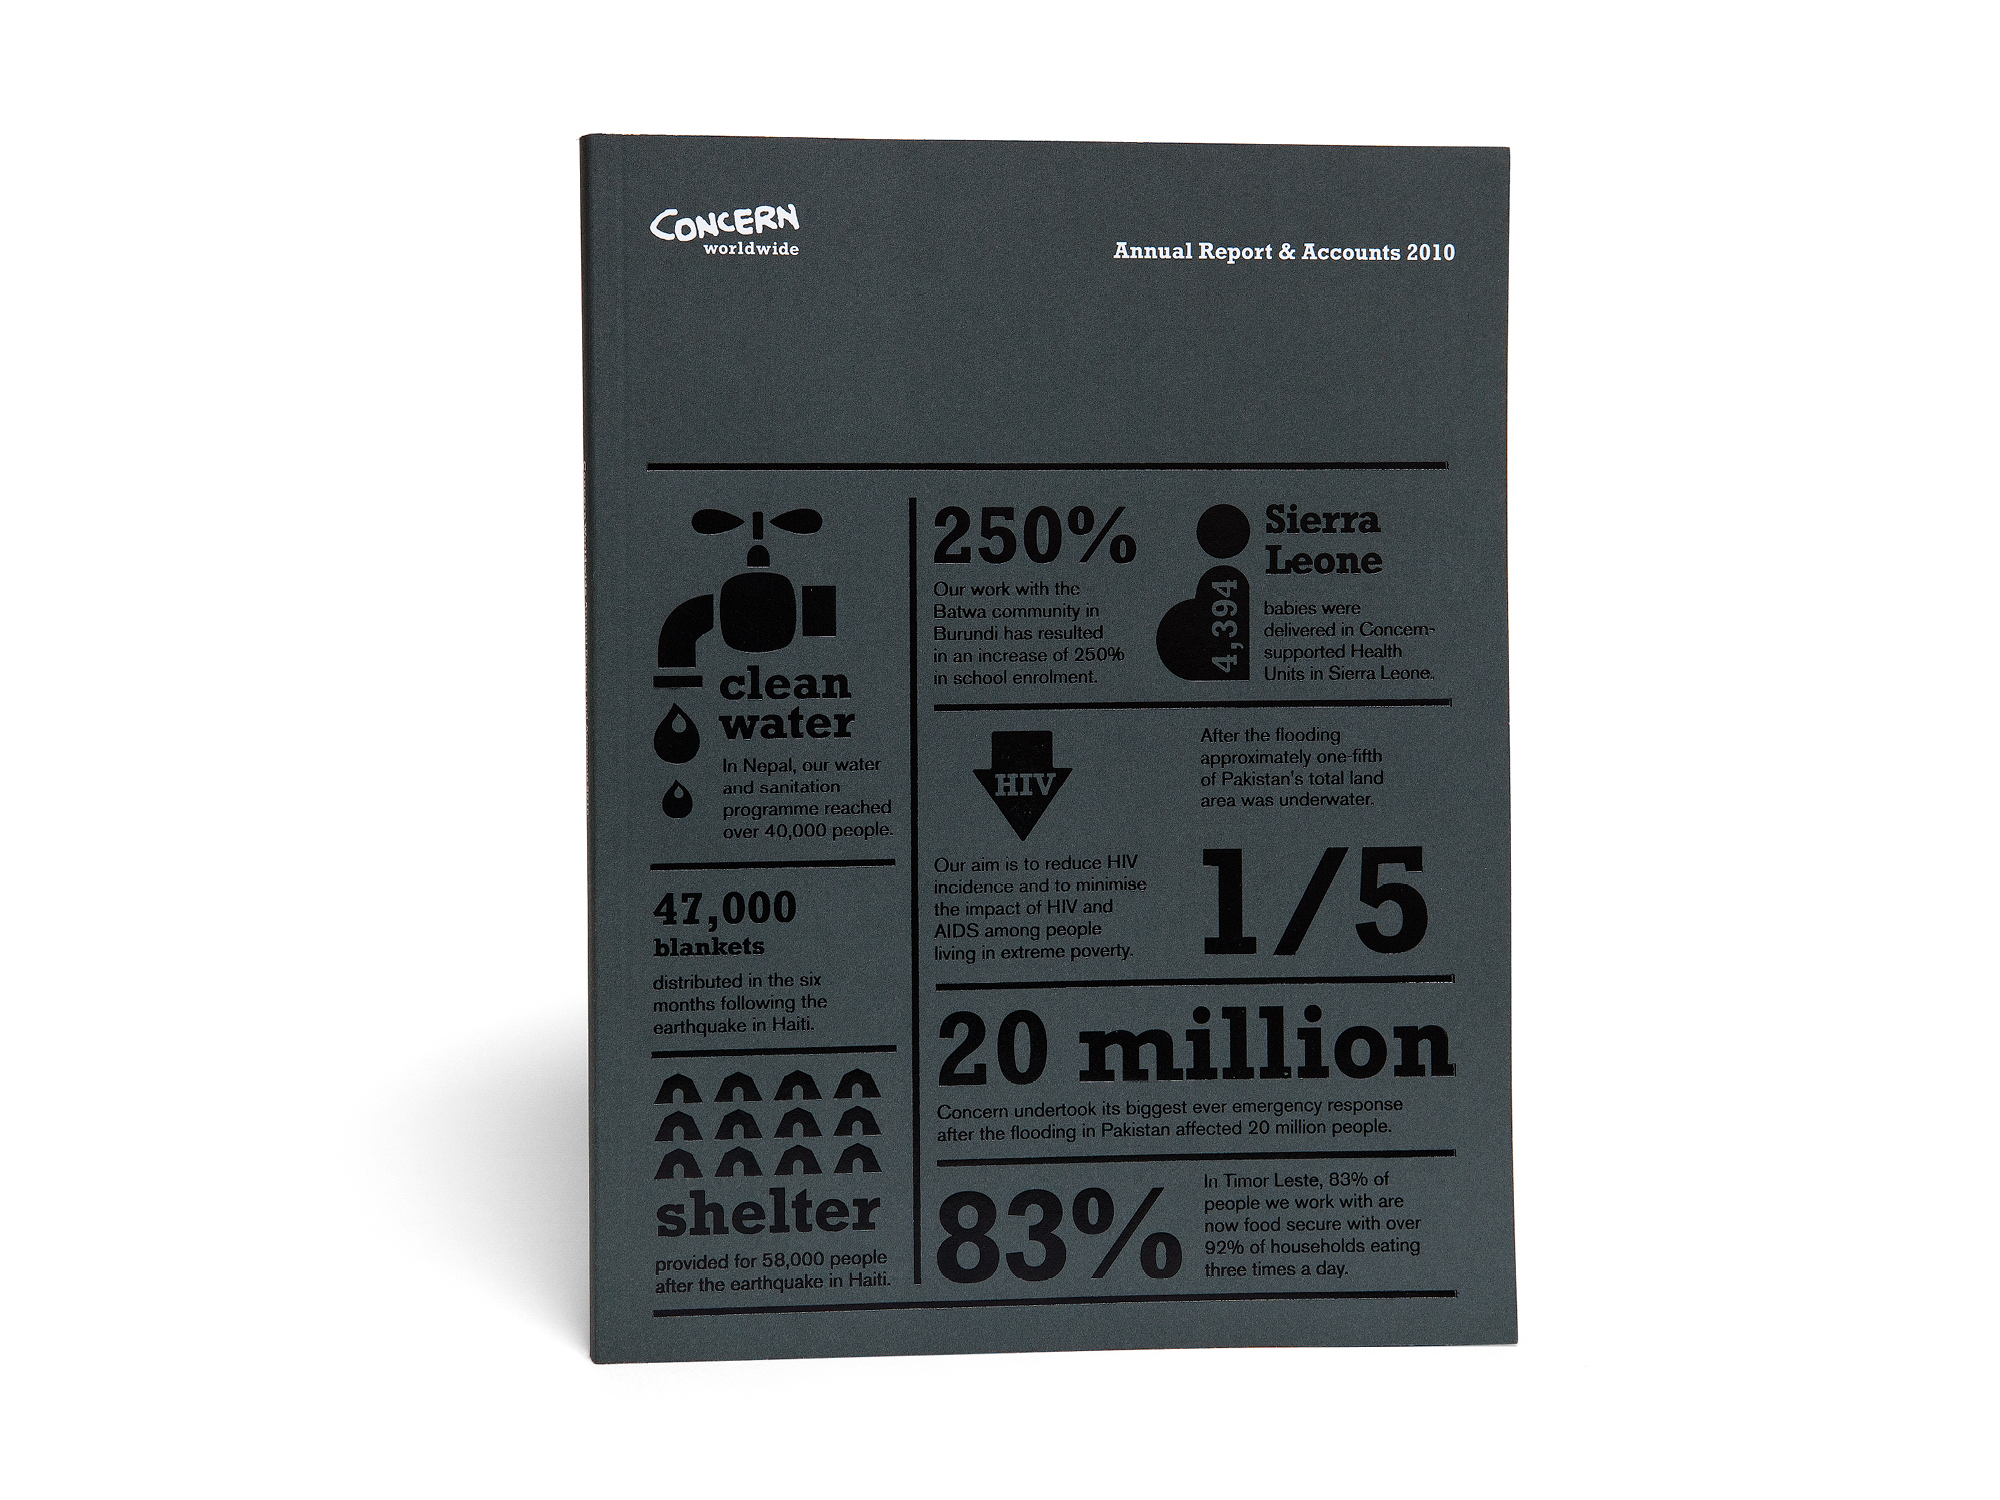 Cover image: Concern Worldwide Annual Report (2011)